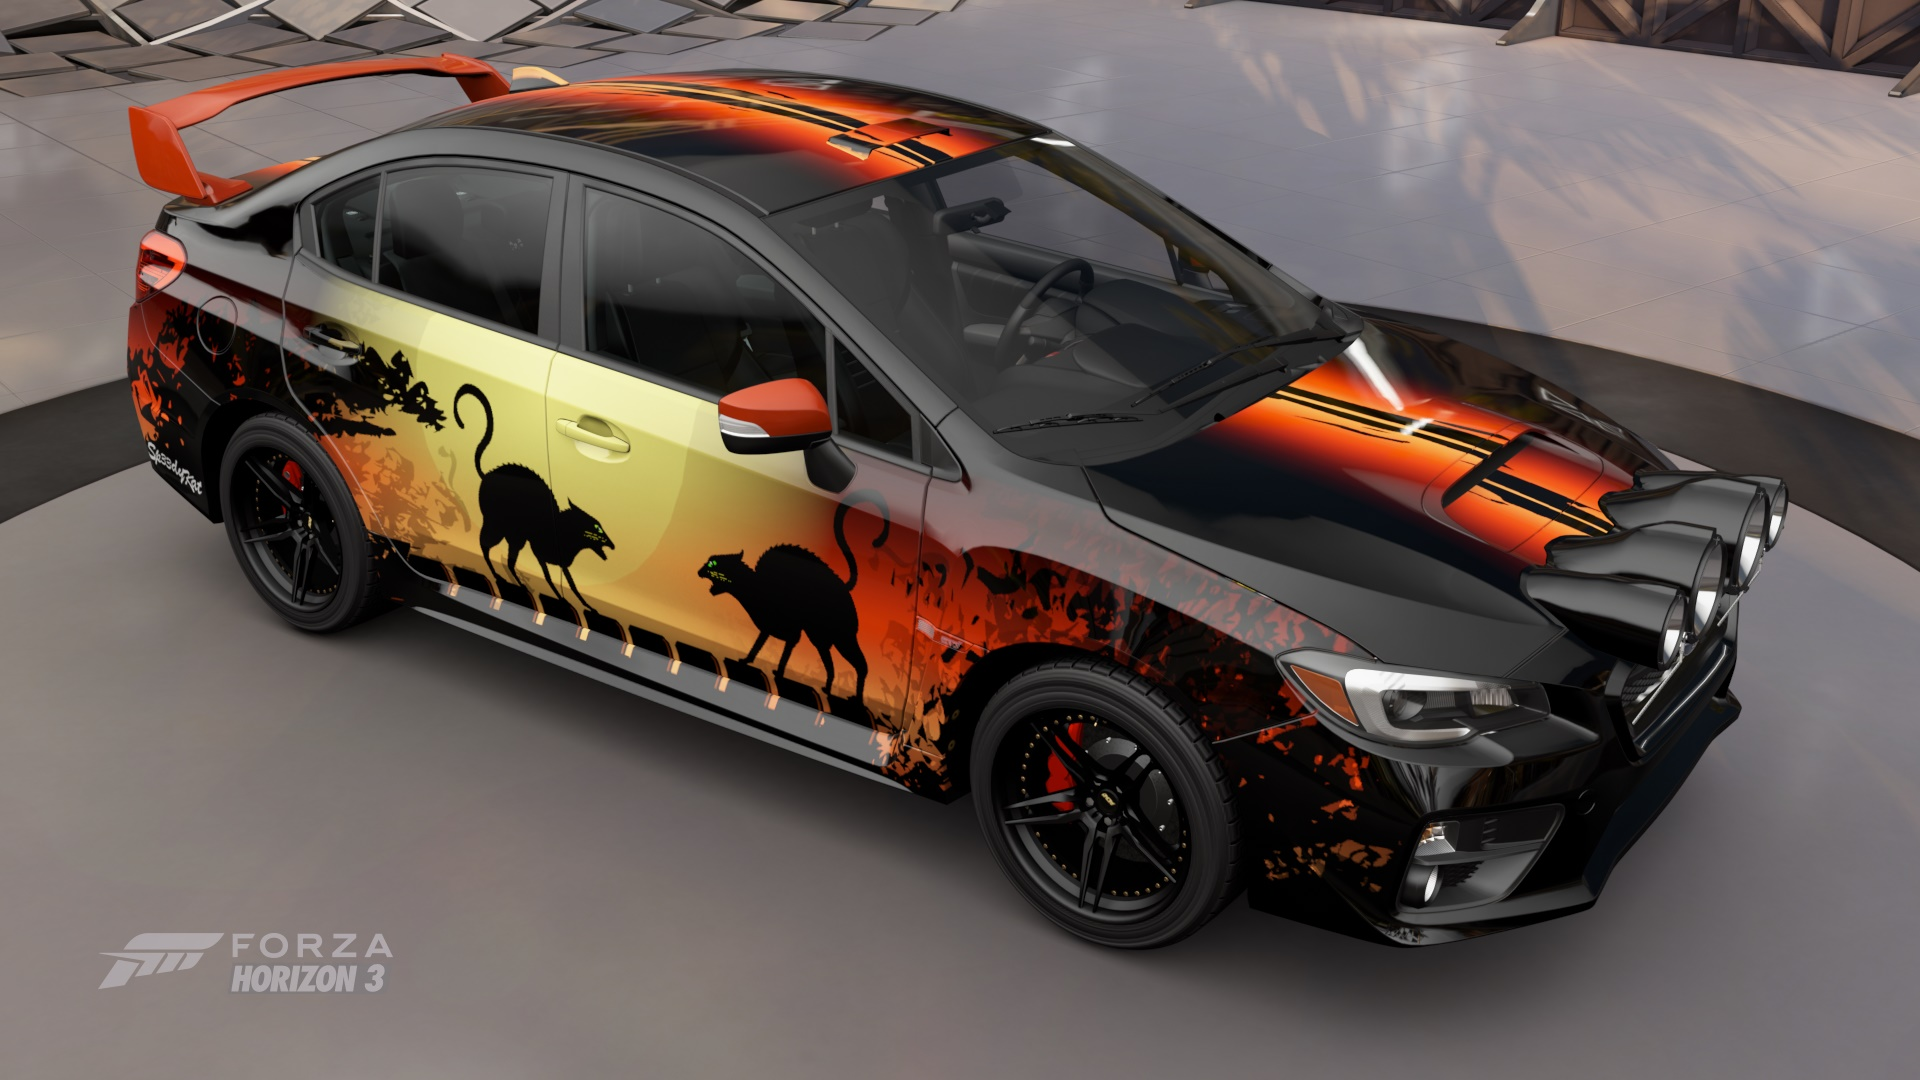 halloween bash 2016 for forza horizon 3 forza motorsport 6 contest archive forza. Black Bedroom Furniture Sets. Home Design Ideas